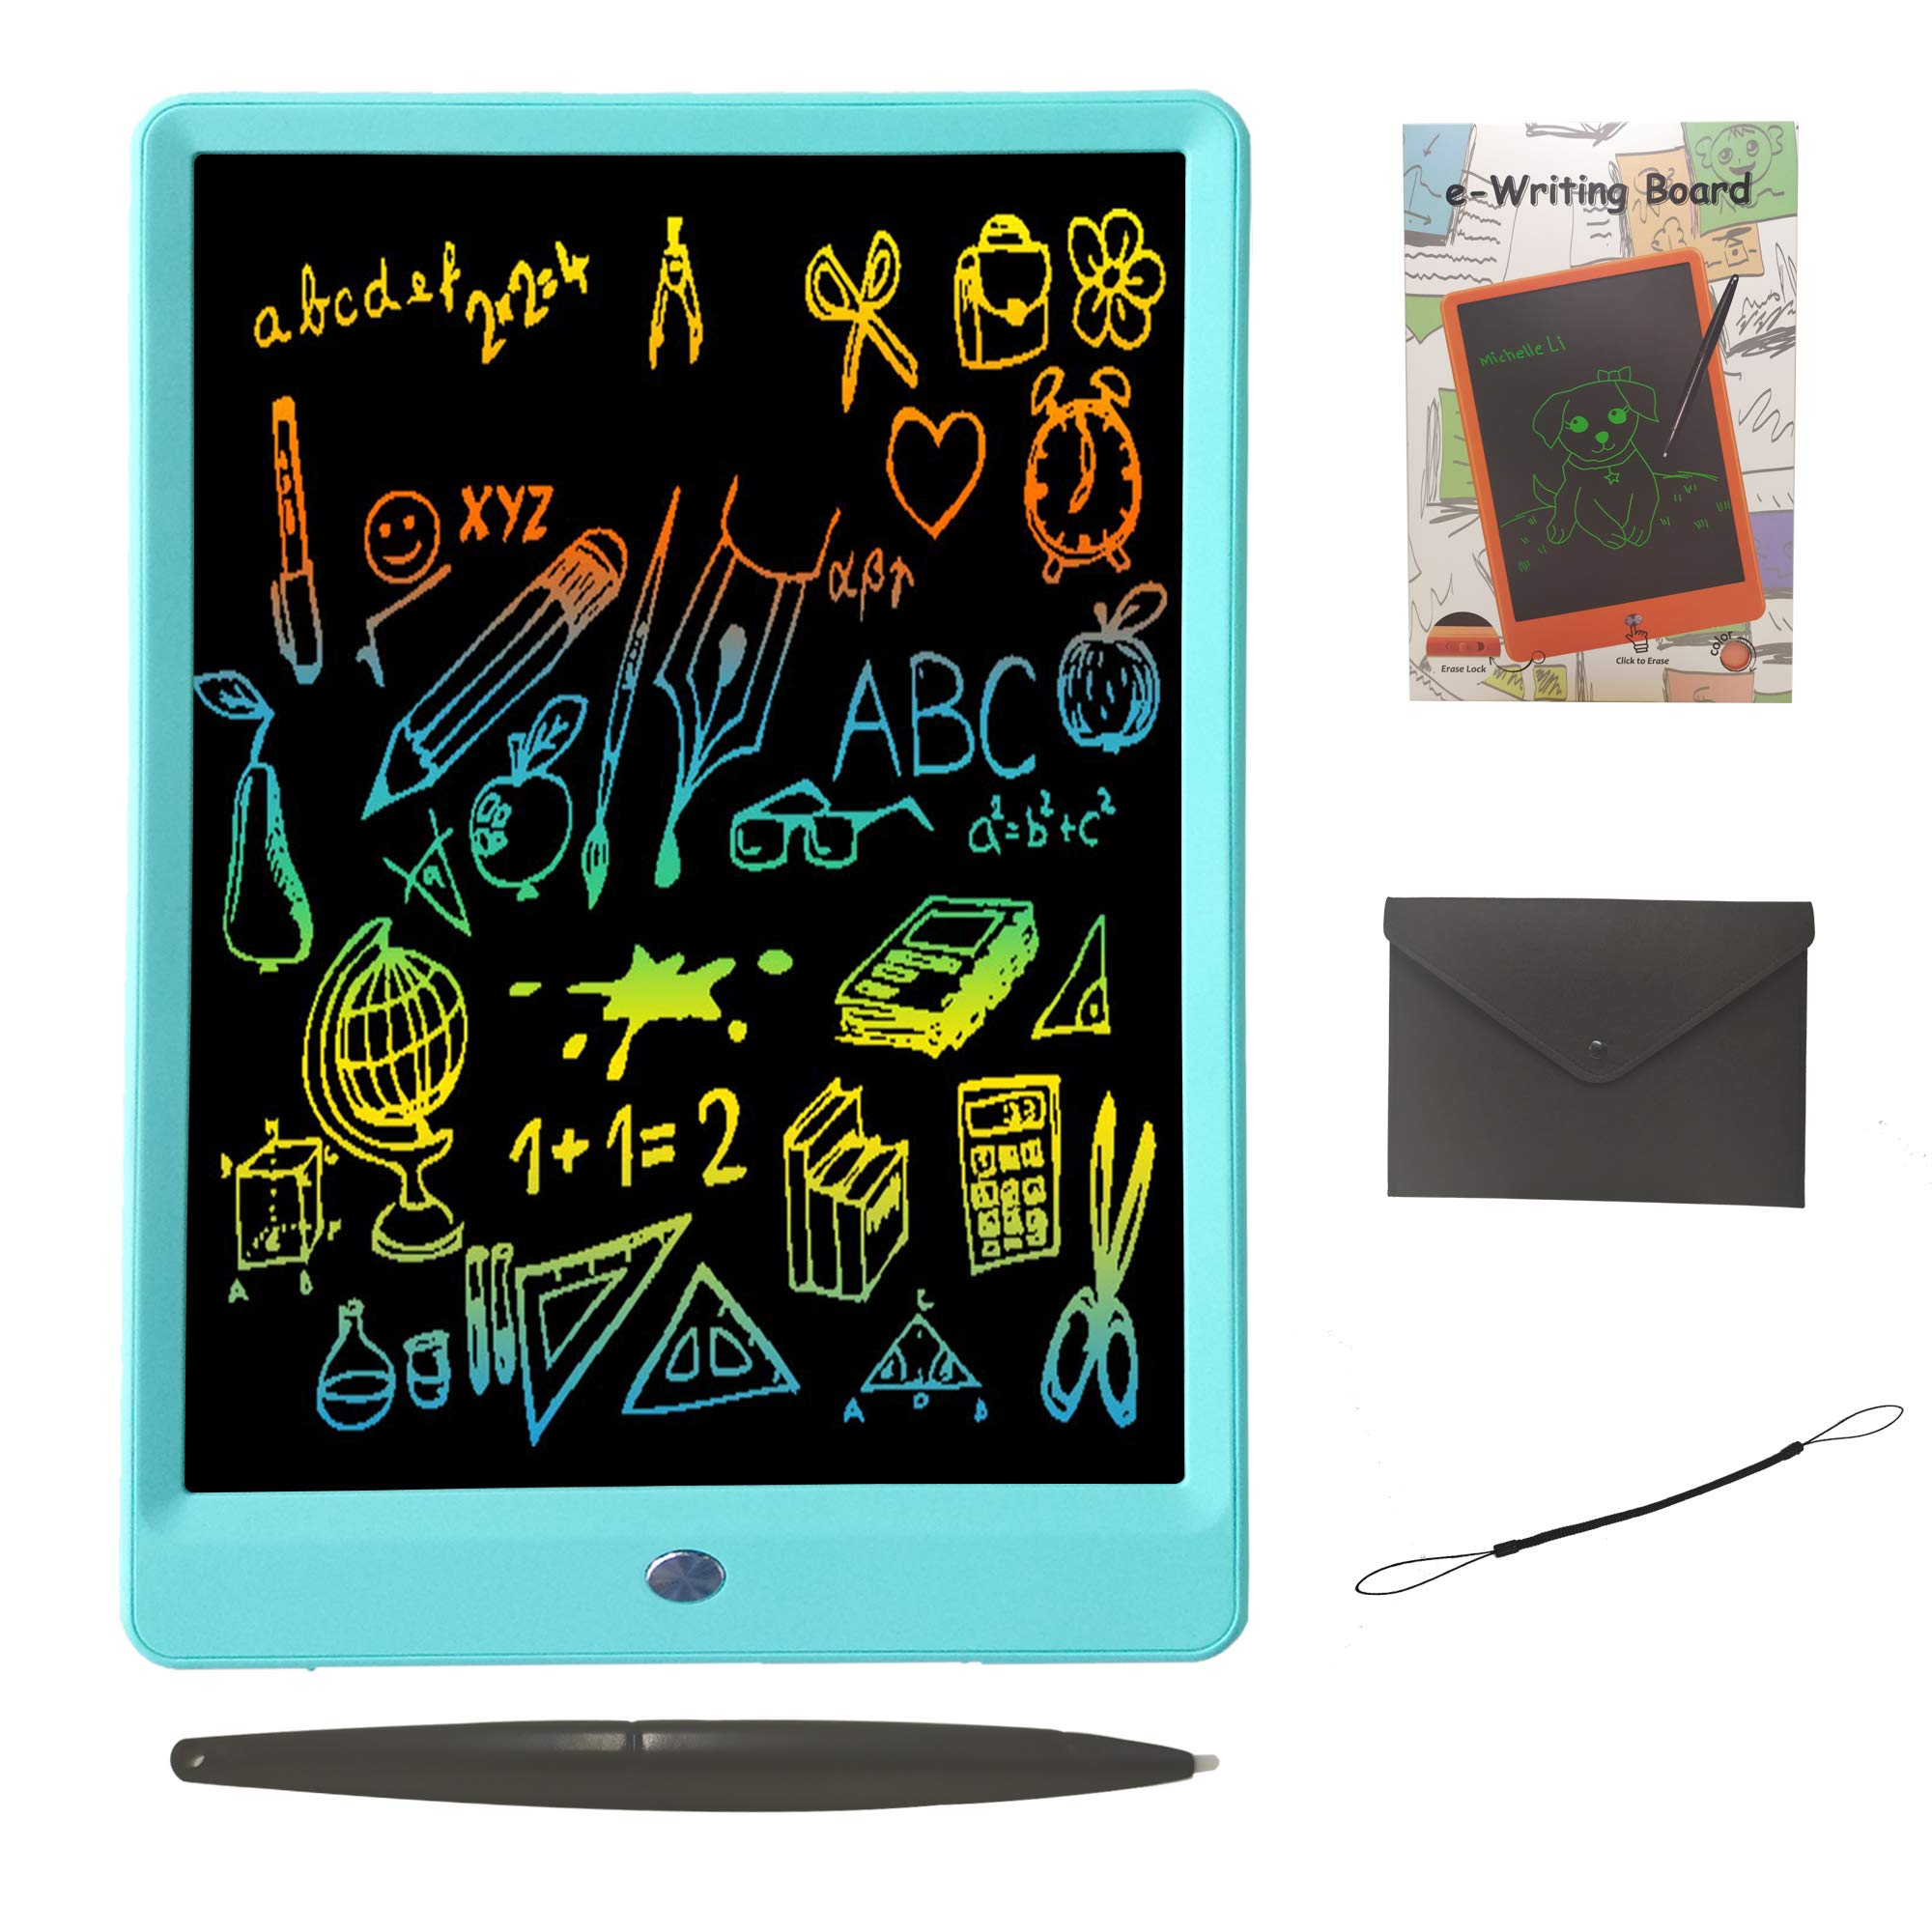 Drawing Tablet 10 Inches LCD Writing Tablet Colorful Screen, Doodle Board Electronic Doodle Pads Writing Board for Kids and Adults(Blue) by ZBHT (Image #1)